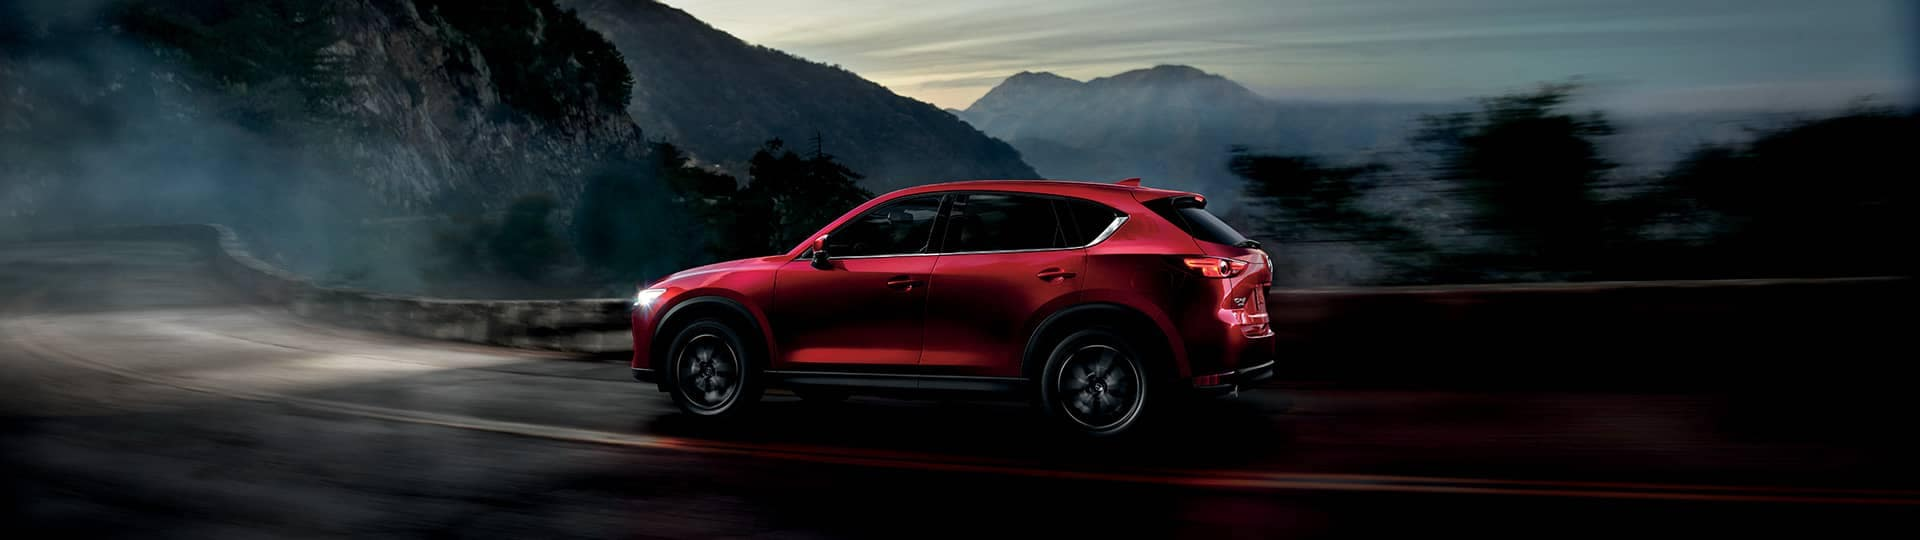 2018 Mazda CX5 Canada Night Driving